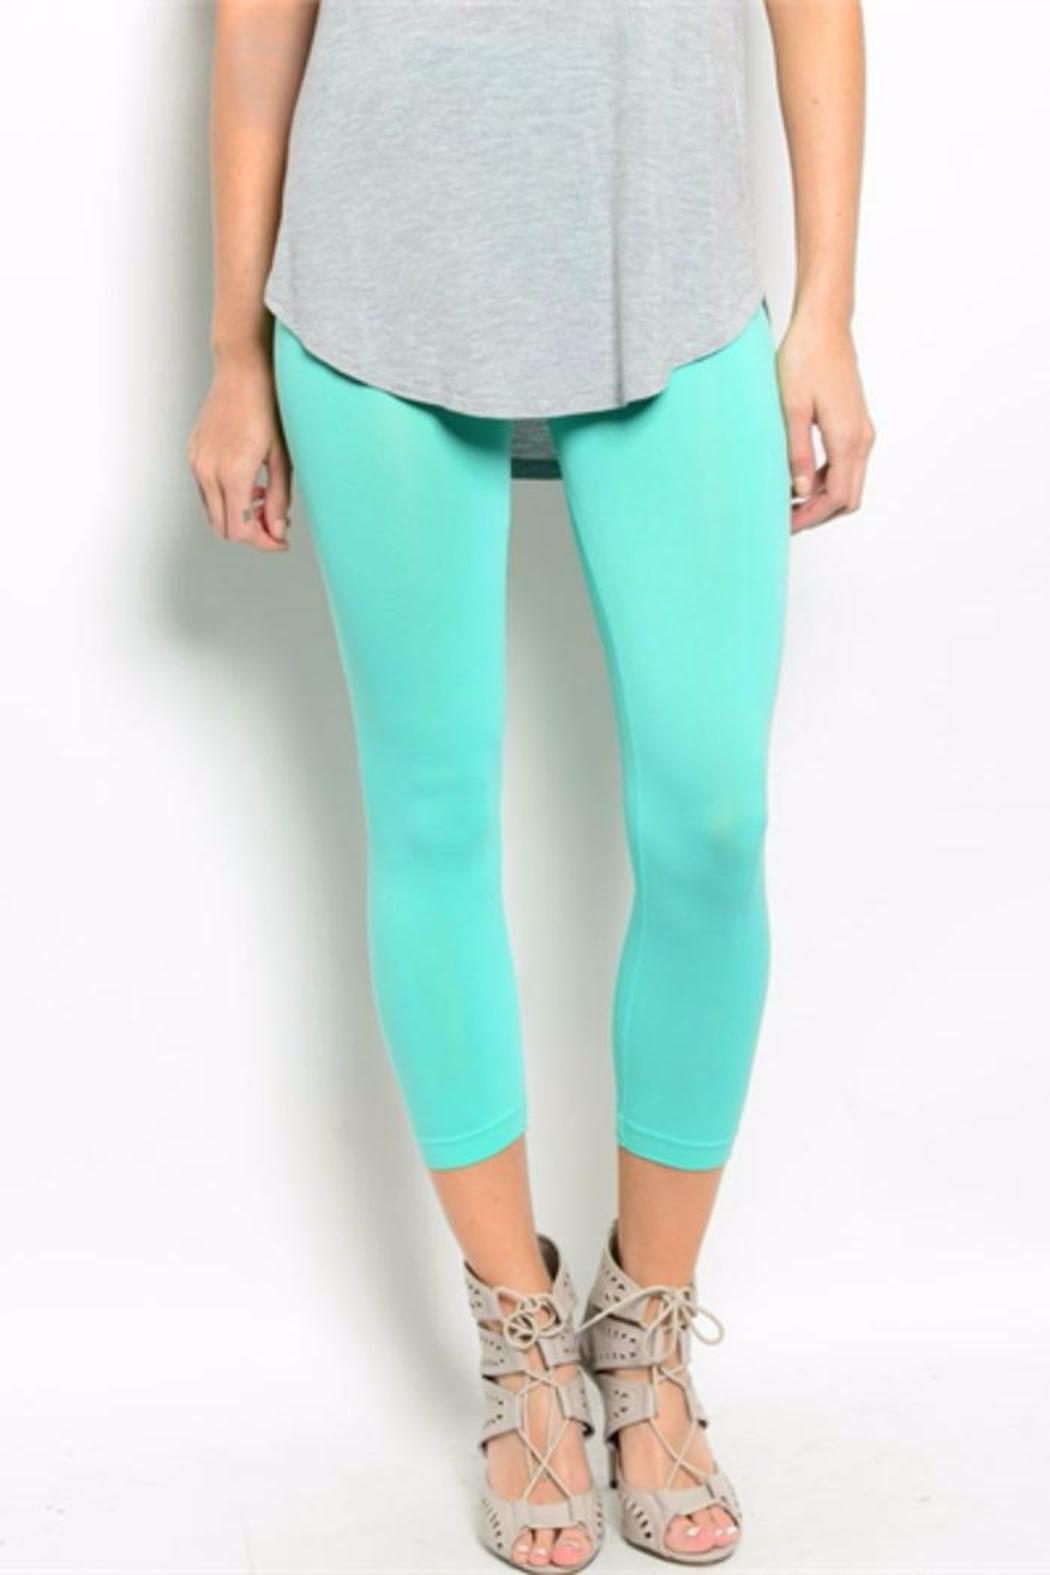 6b74a81d83d23 soho girls Mint Capri Leggings from Indiana by Lucy Couture — Shoptiques